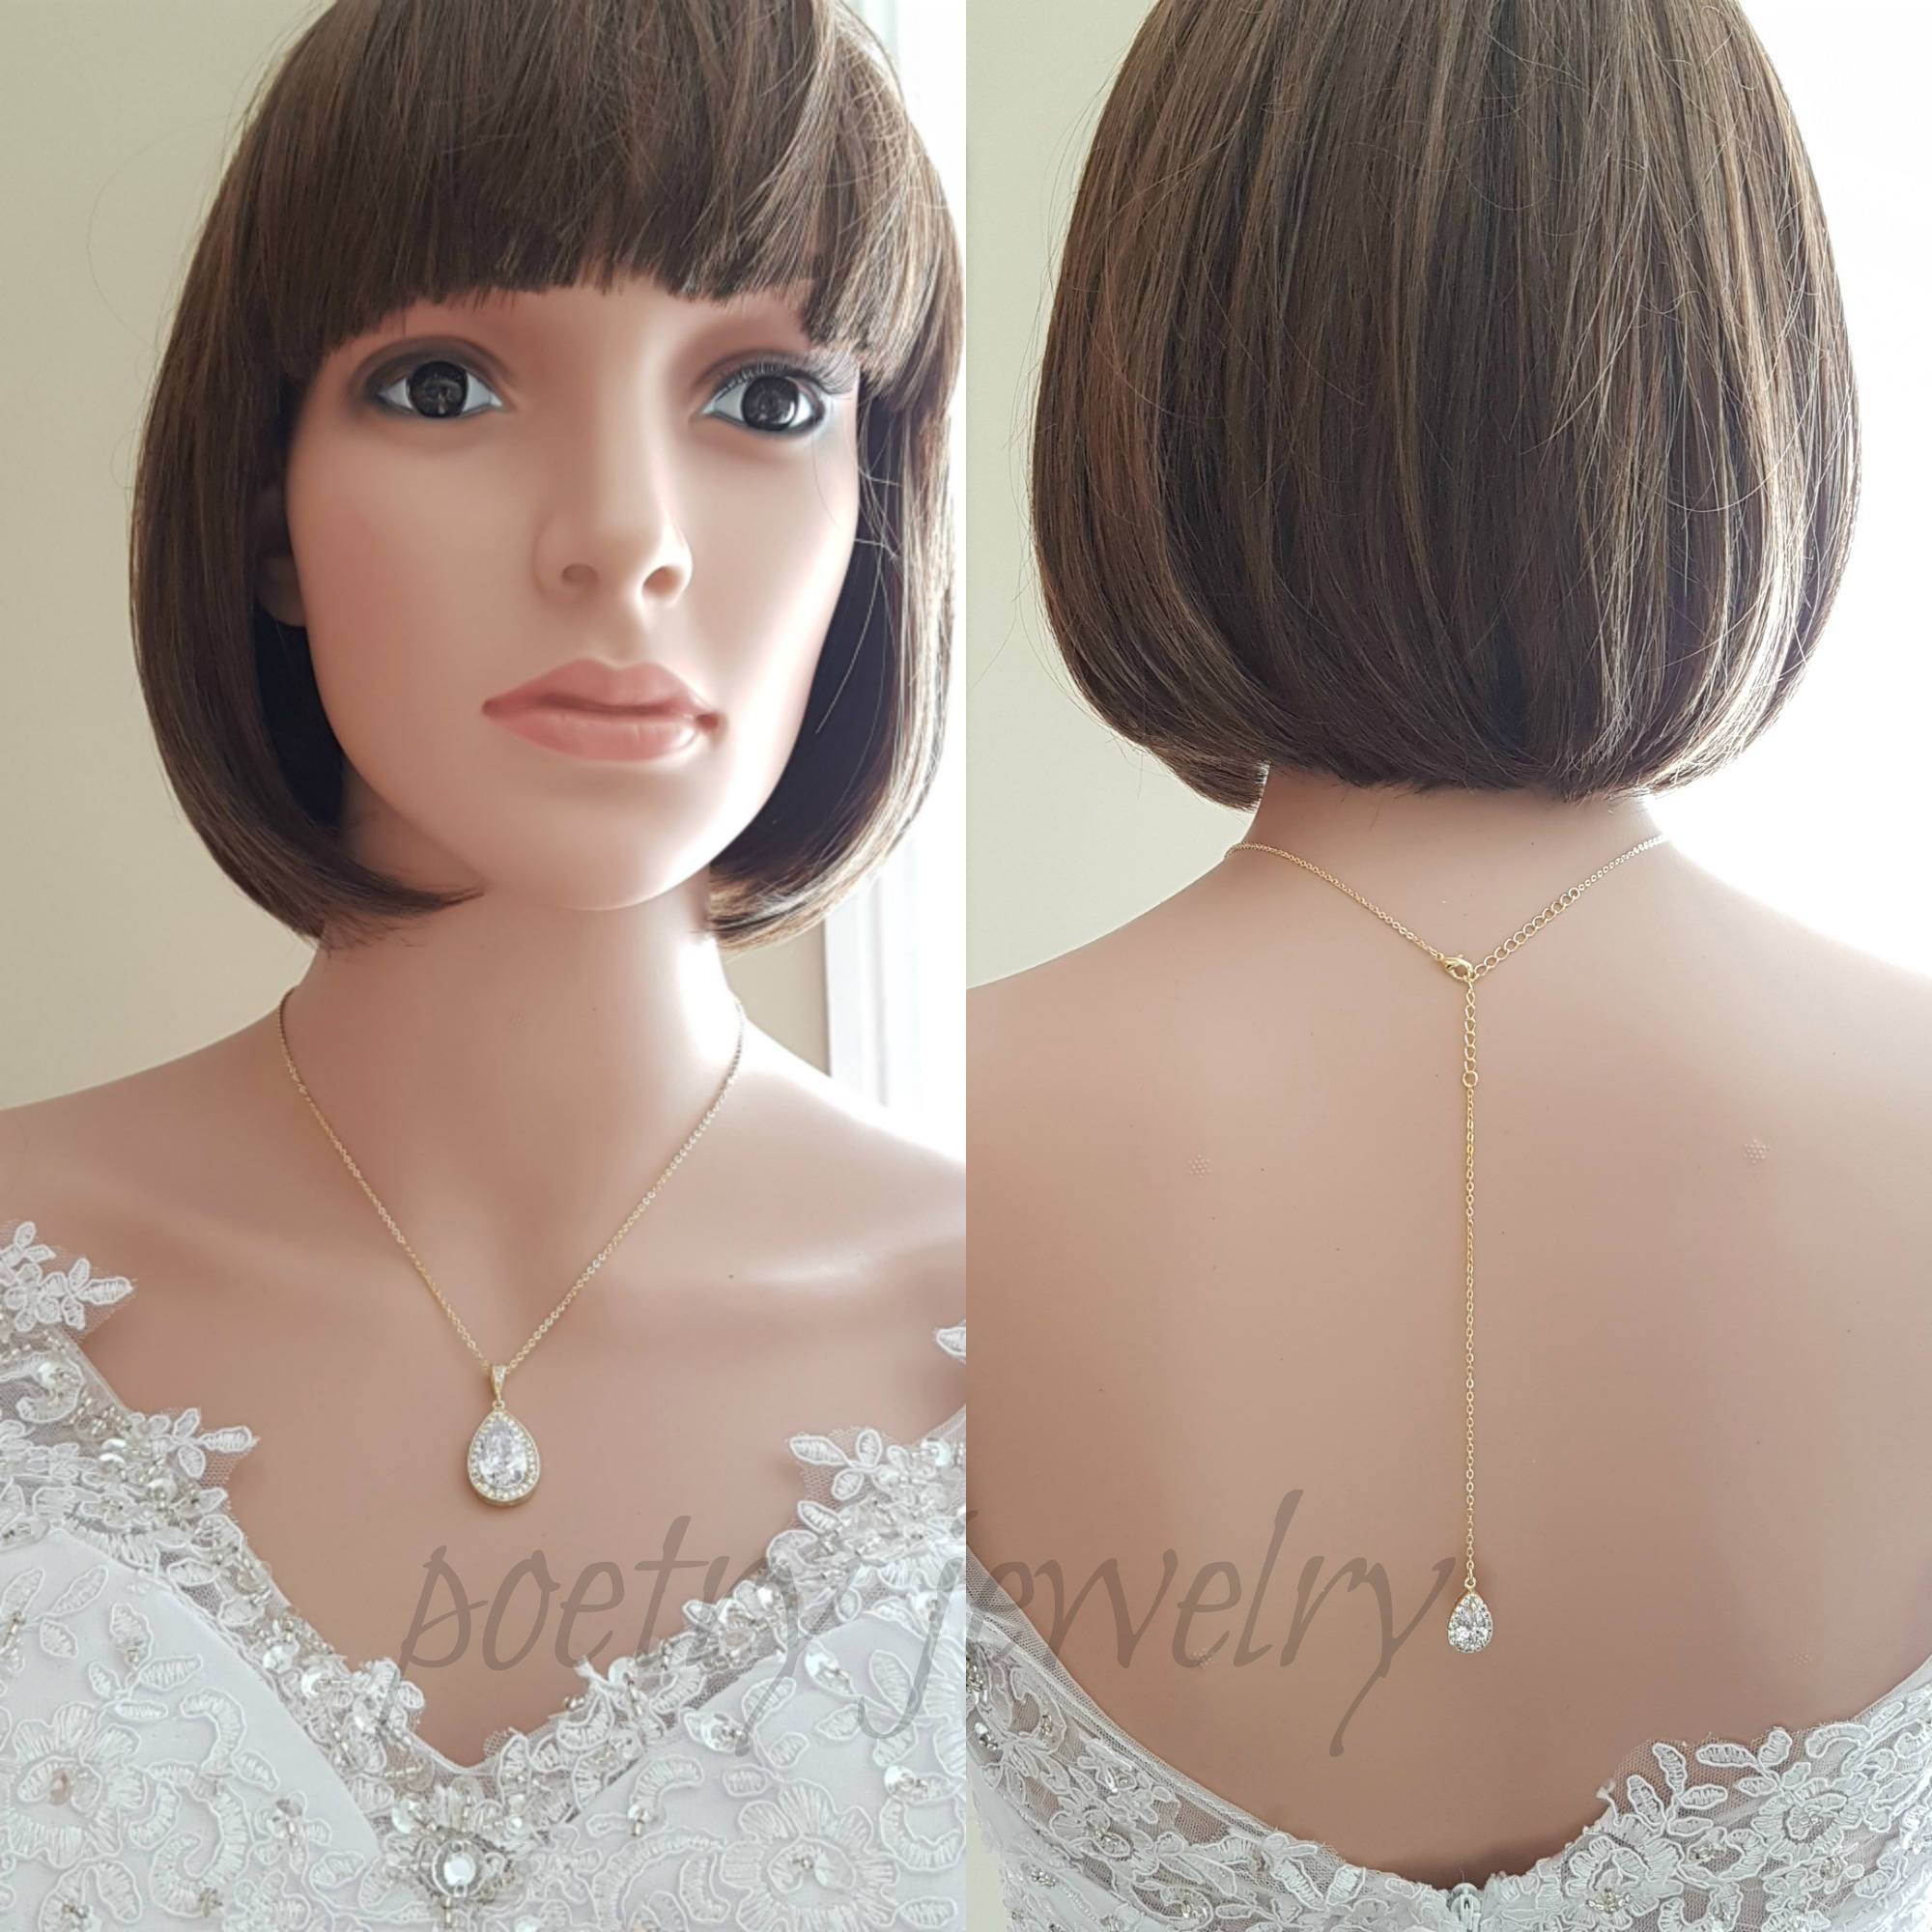 Simple Wedding Gold Back Necklace, Crystal Back Drop Bridal Necklace, Gold Bridesmaid Necklace Gift, Bridal Jewelry, Evelyn